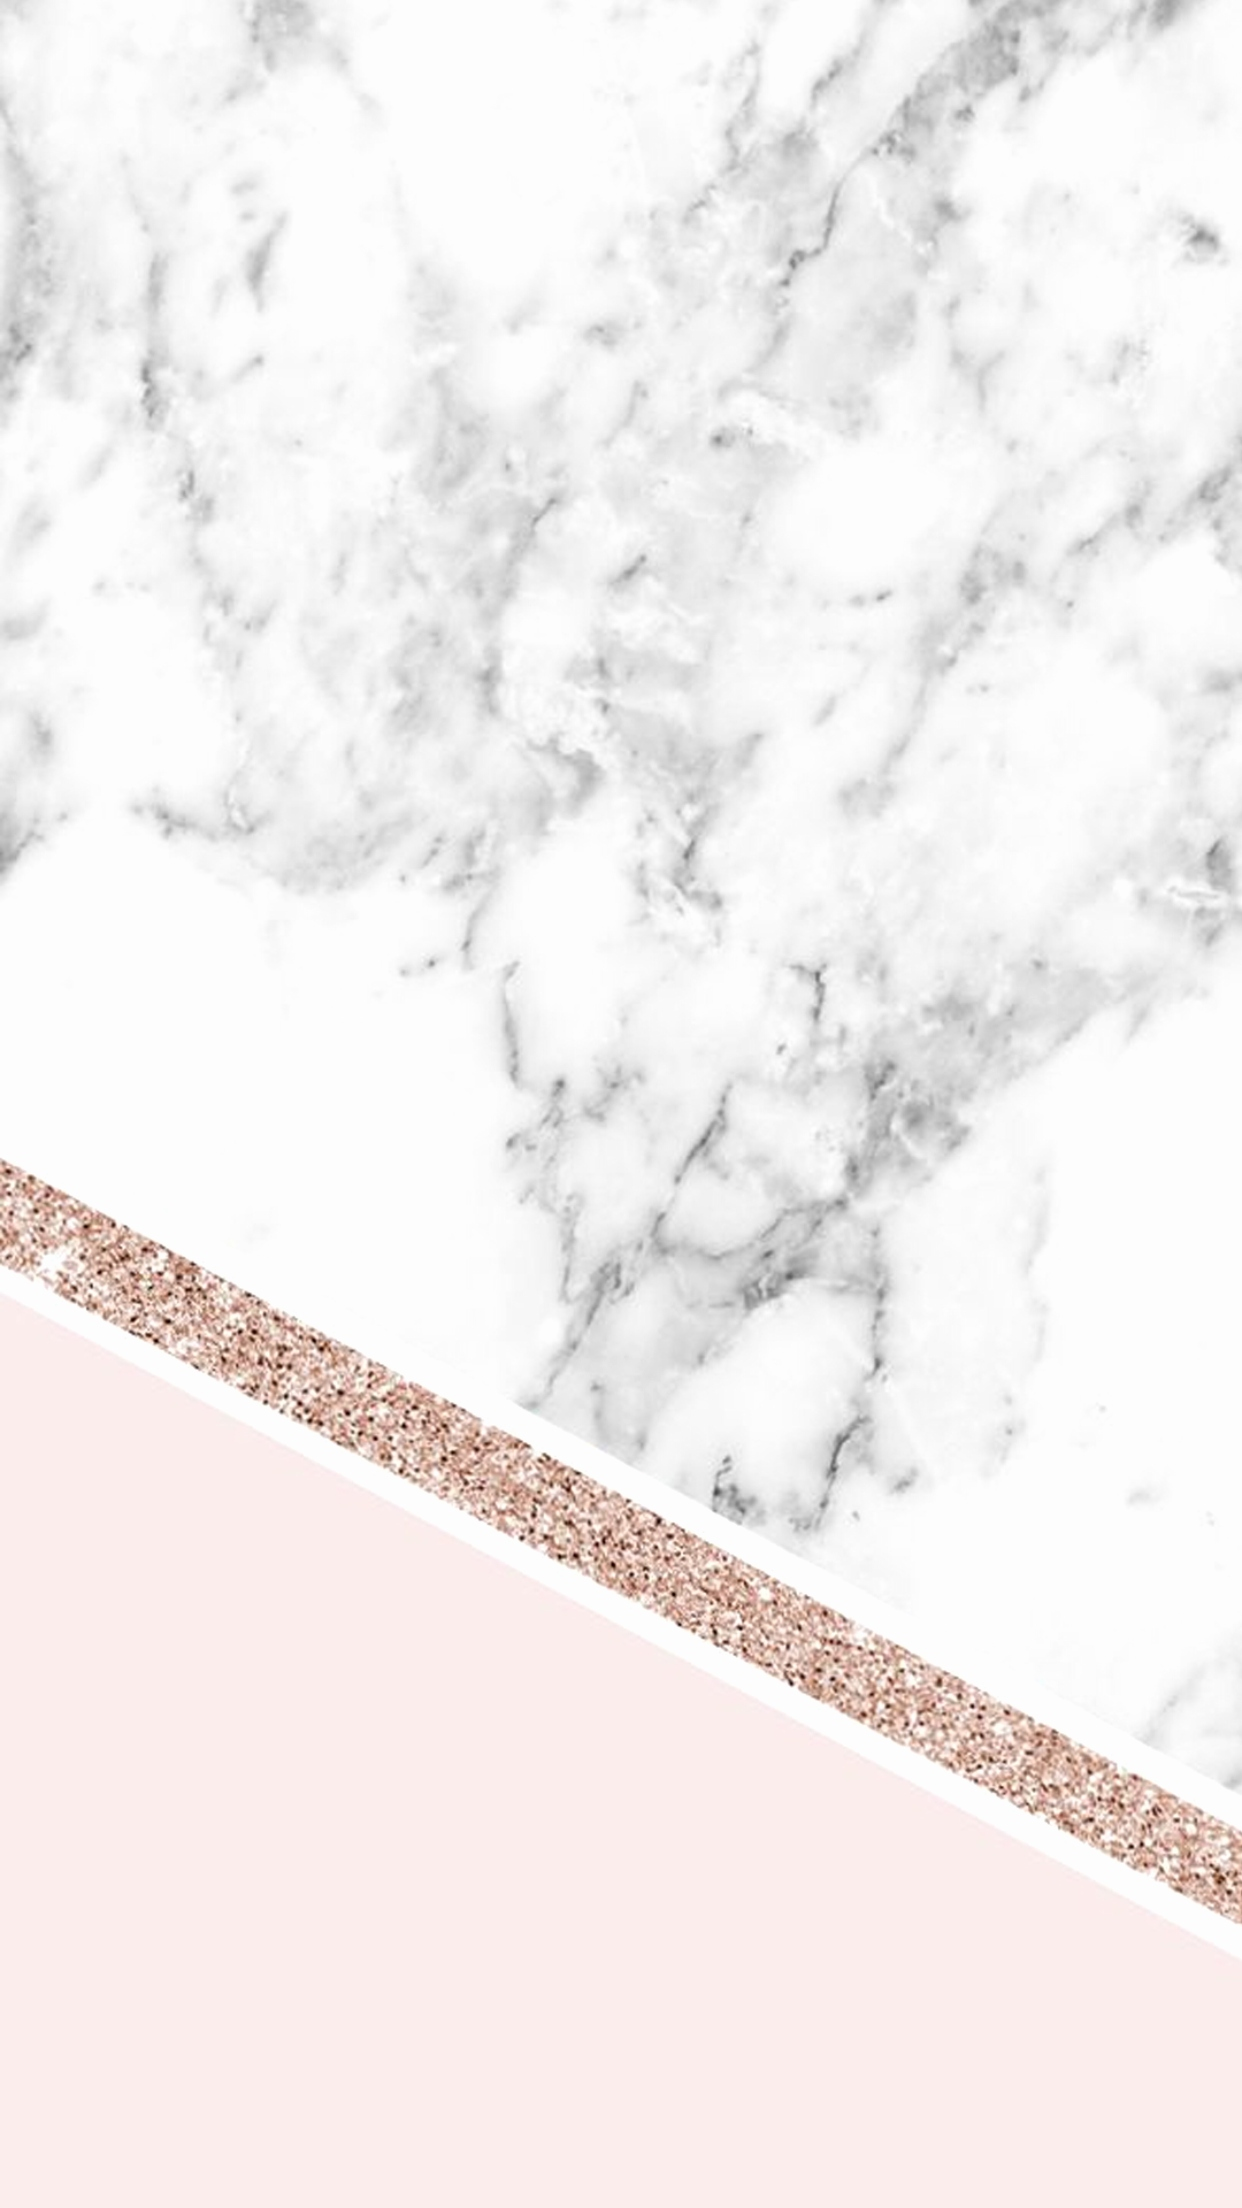 Use The Internet To Find The Best Rose Gold Cute Wallpapers Clear Wallpaper